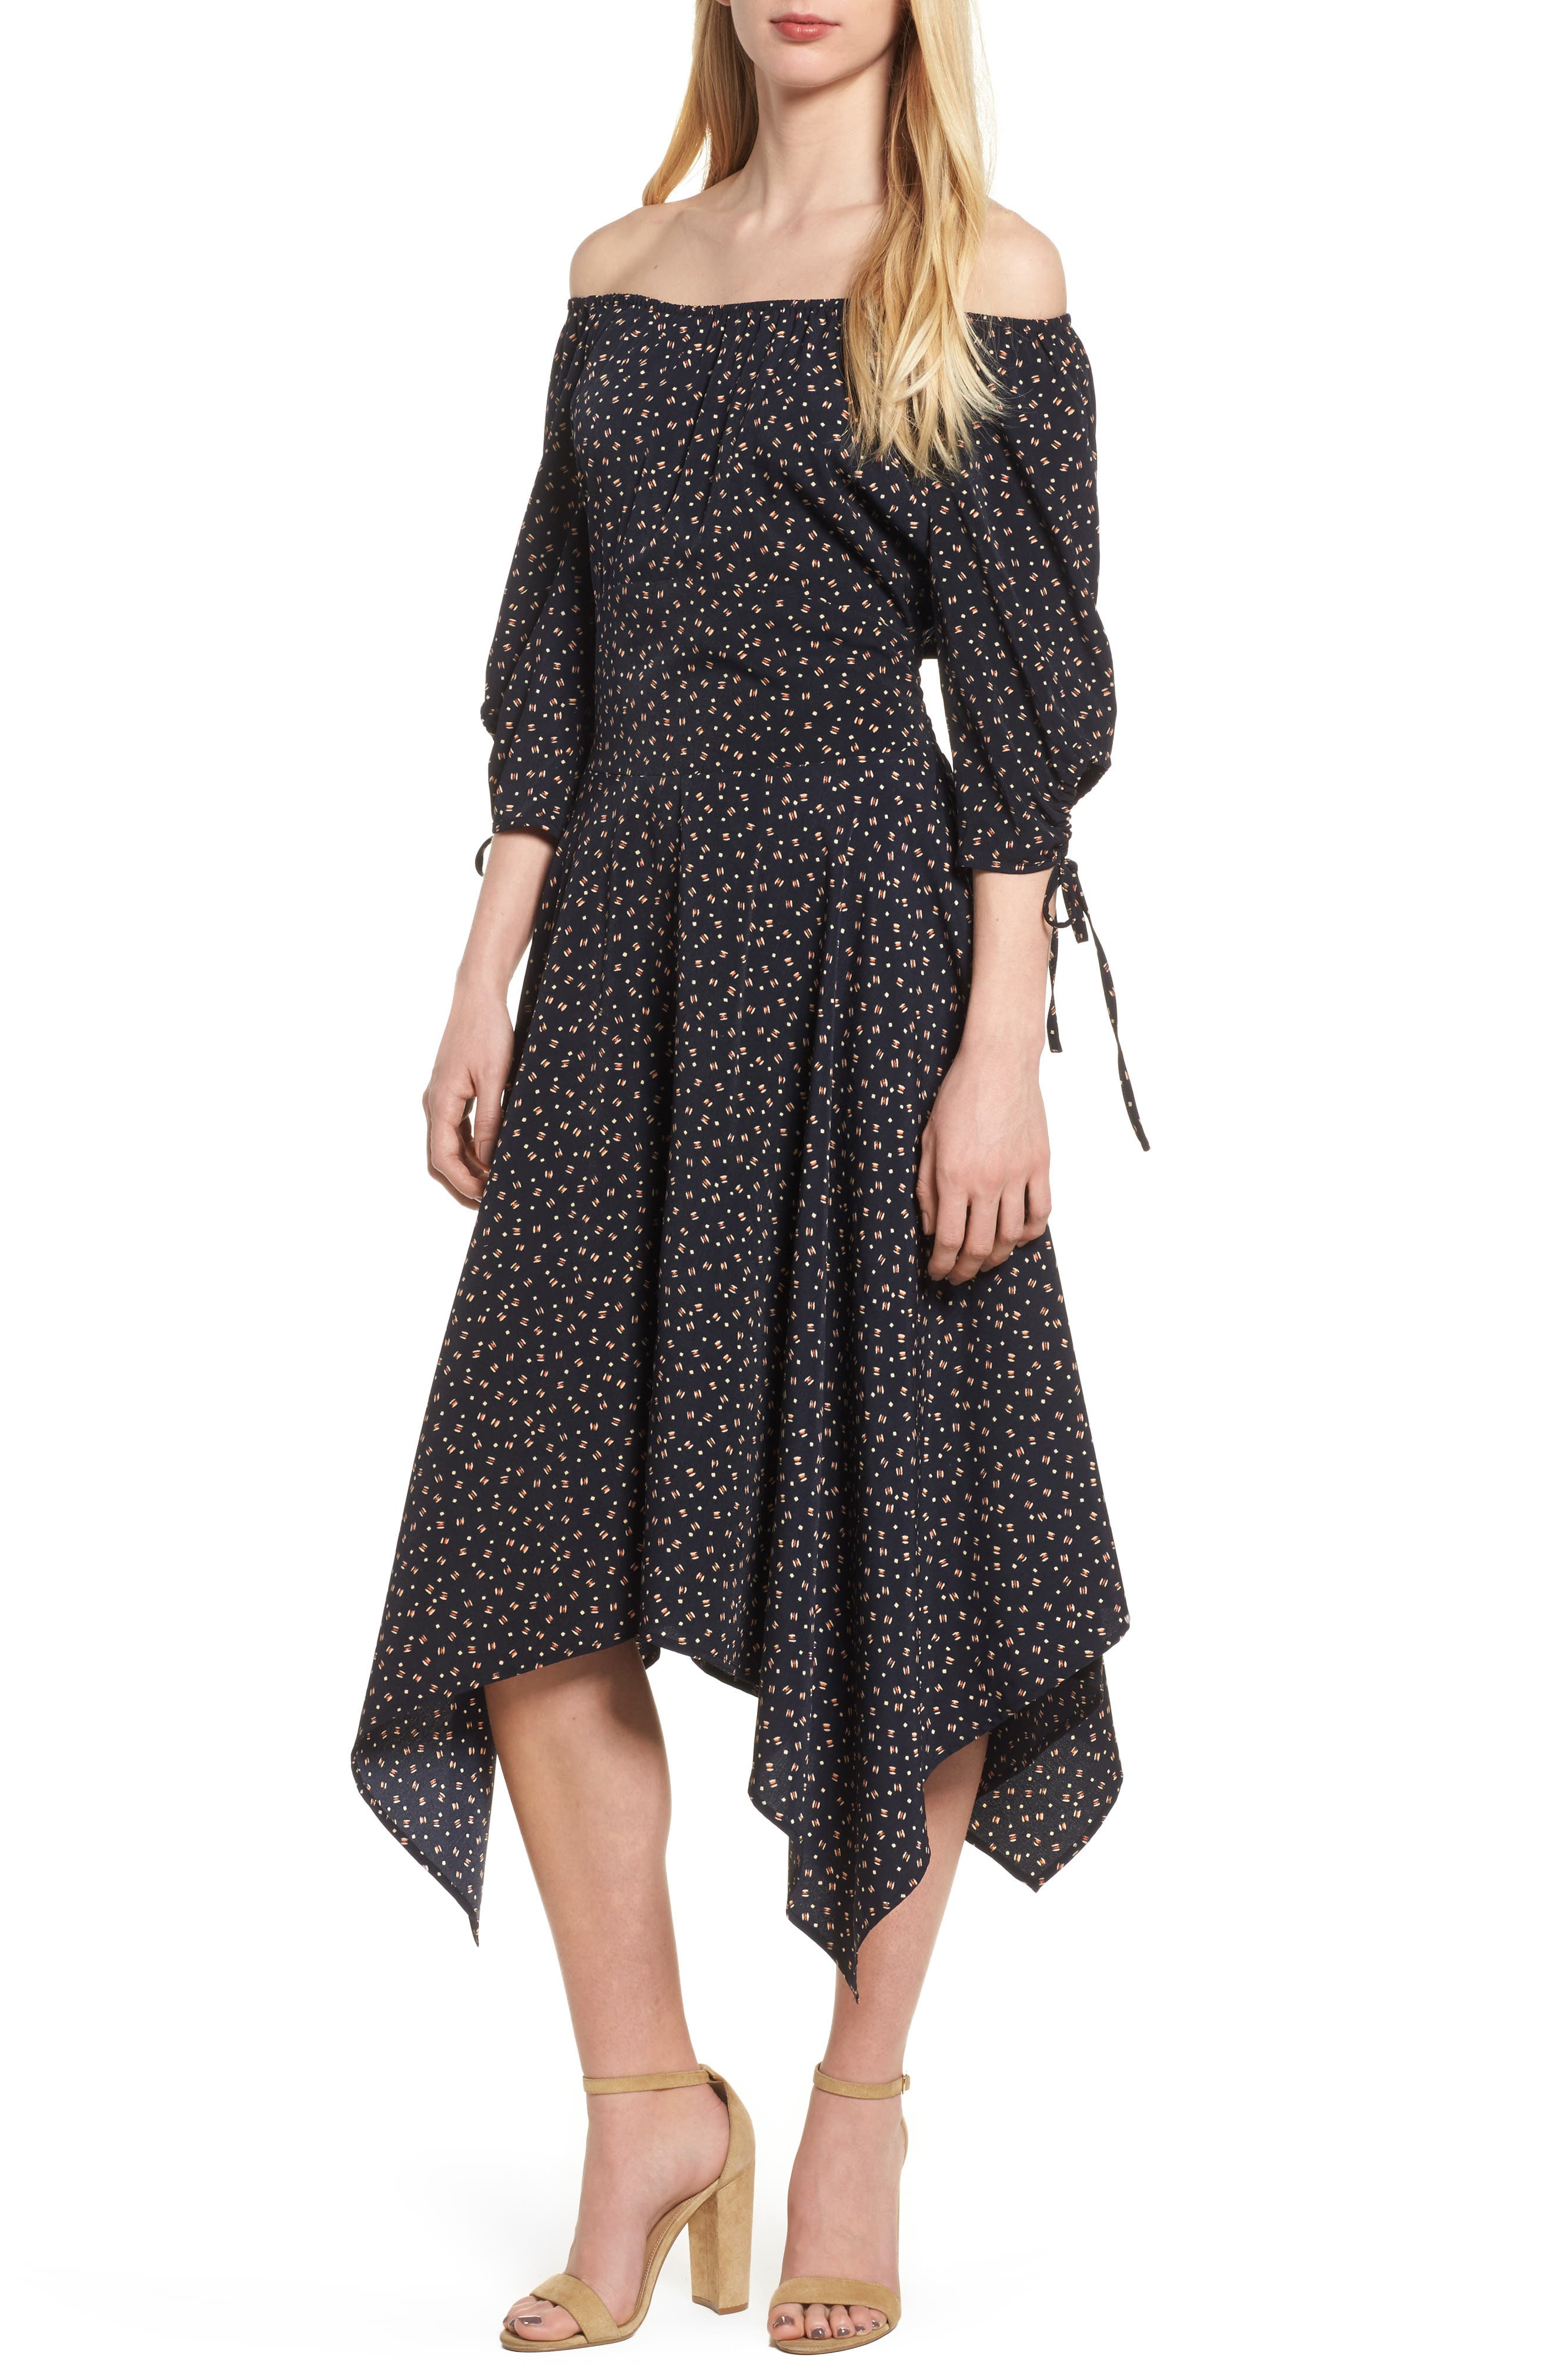 Bishop + Young Off the Shoulder Dress,                         Main,                         color, Navy Print